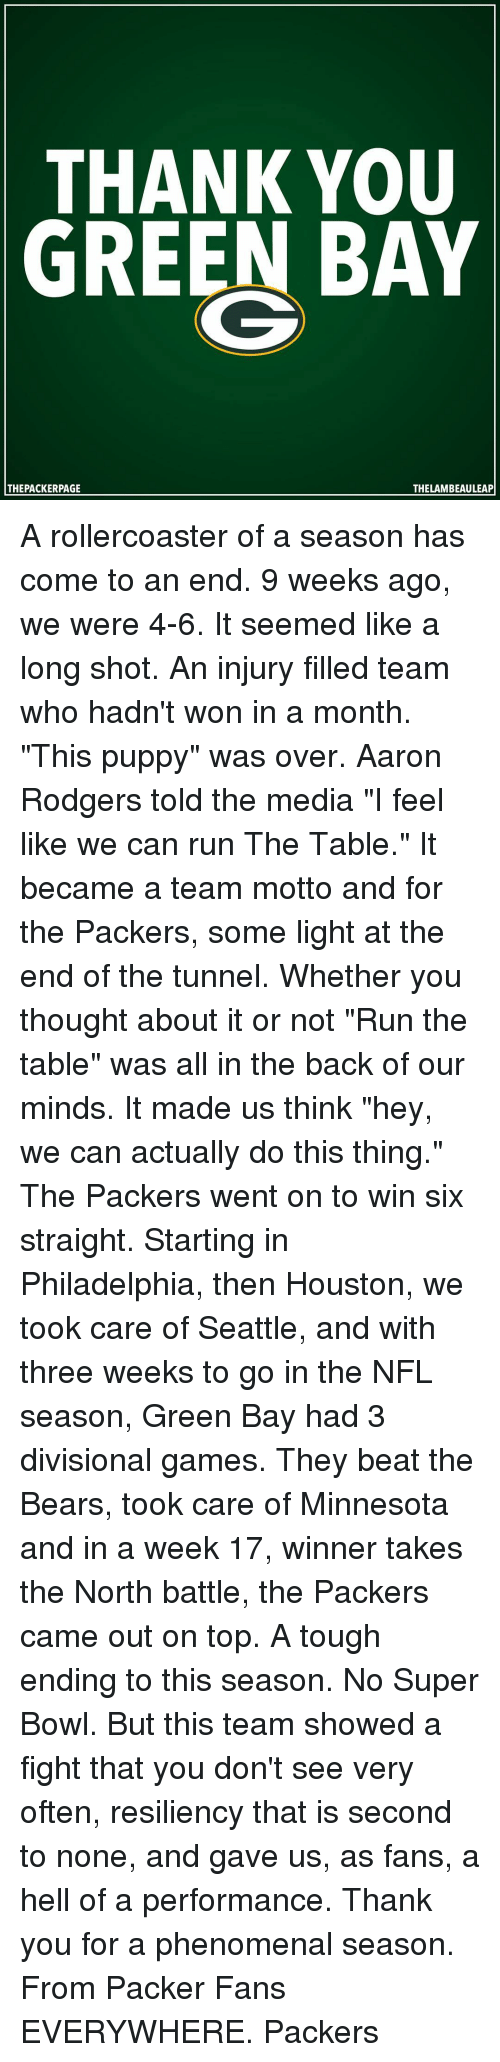 """Rodgering: THANK YOU  GREEN BAY  THE PACKERPAGE  THELAMBEAULEAP A rollercoaster of a season has come to an end. 9 weeks ago, we were 4-6. It seemed like a long shot. An injury filled team who hadn't won in a month. """"This puppy"""" was over. Aaron Rodgers told the media """"I feel like we can run The Table."""" It became a team motto and for the Packers, some light at the end of the tunnel. Whether you thought about it or not """"Run the table"""" was all in the back of our minds. It made us think """"hey, we can actually do this thing."""" The Packers went on to win six straight. Starting in Philadelphia, then Houston, we took care of Seattle, and with three weeks to go in the NFL season, Green Bay had 3 divisional games. They beat the Bears, took care of Minnesota and in a week 17, winner takes the North battle, the Packers came out on top. A tough ending to this season. No Super Bowl. But this team showed a fight that you don't see very often, resiliency that is second to none, and gave us, as fans, a hell of a performance. Thank you for a phenomenal season. From Packer Fans EVERYWHERE. Packers"""